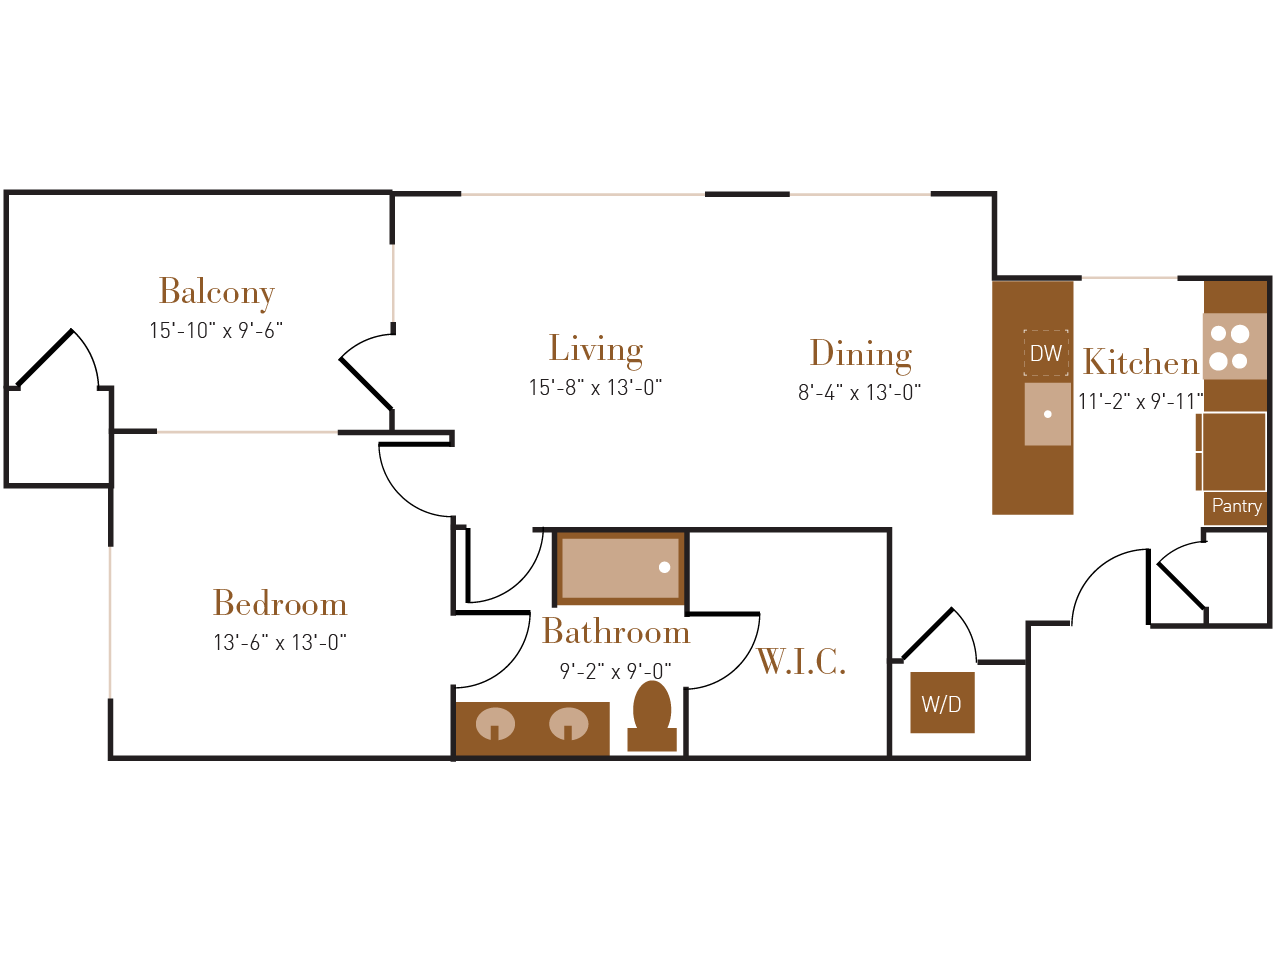 A Six A floor plan diagram. One bedroom, one bathroom, an open kitchen dining and living area, a balcony, and a washer dryer.